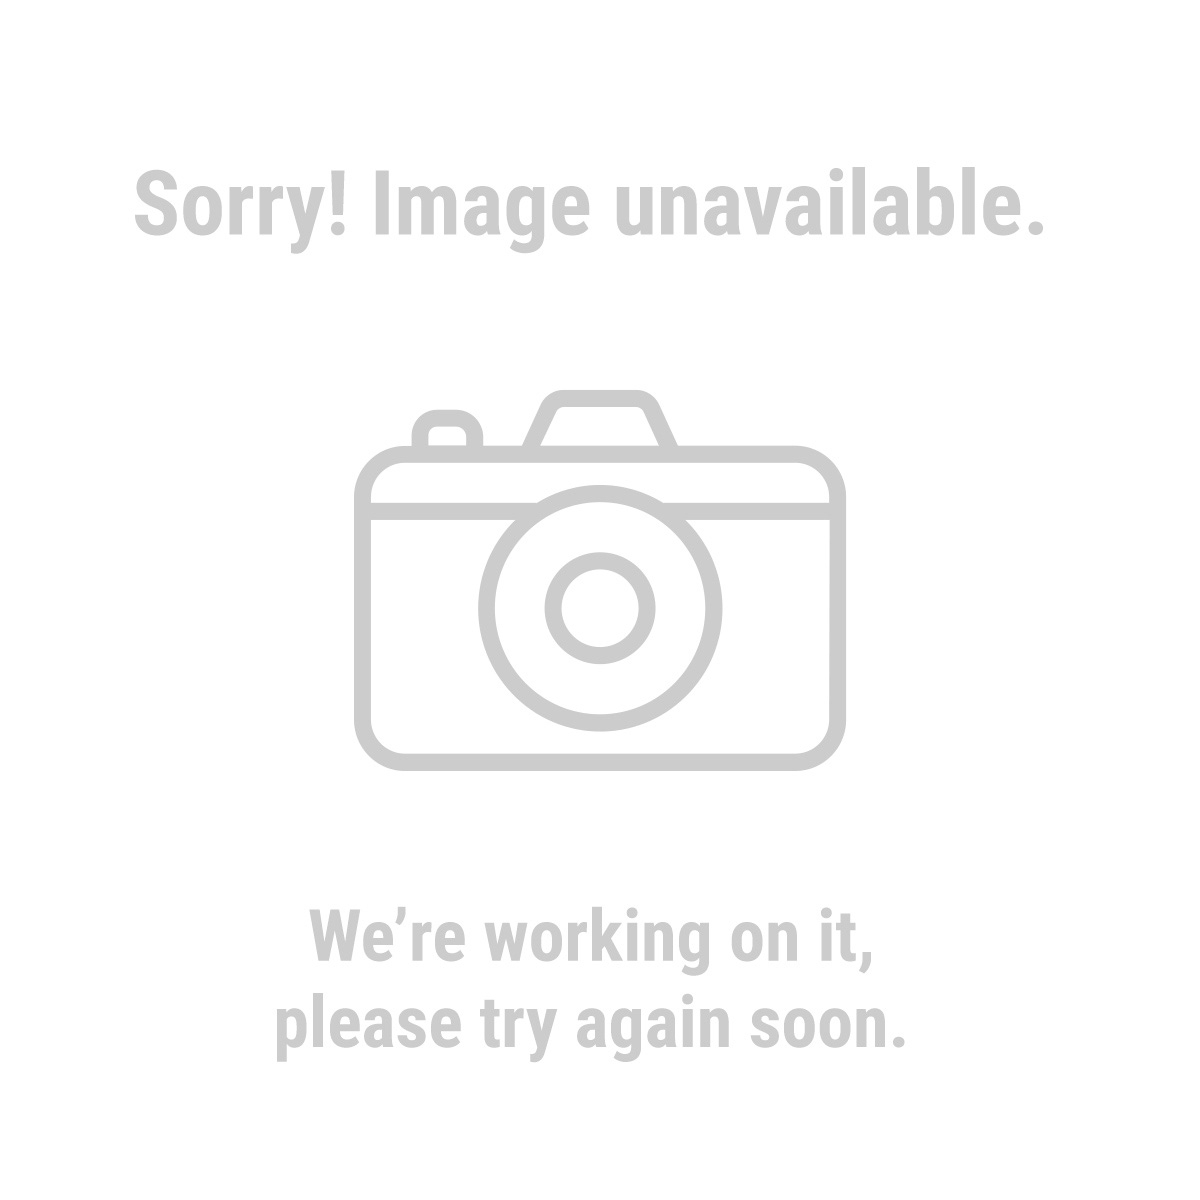 90743 $500 Harbor Freight Gift Card